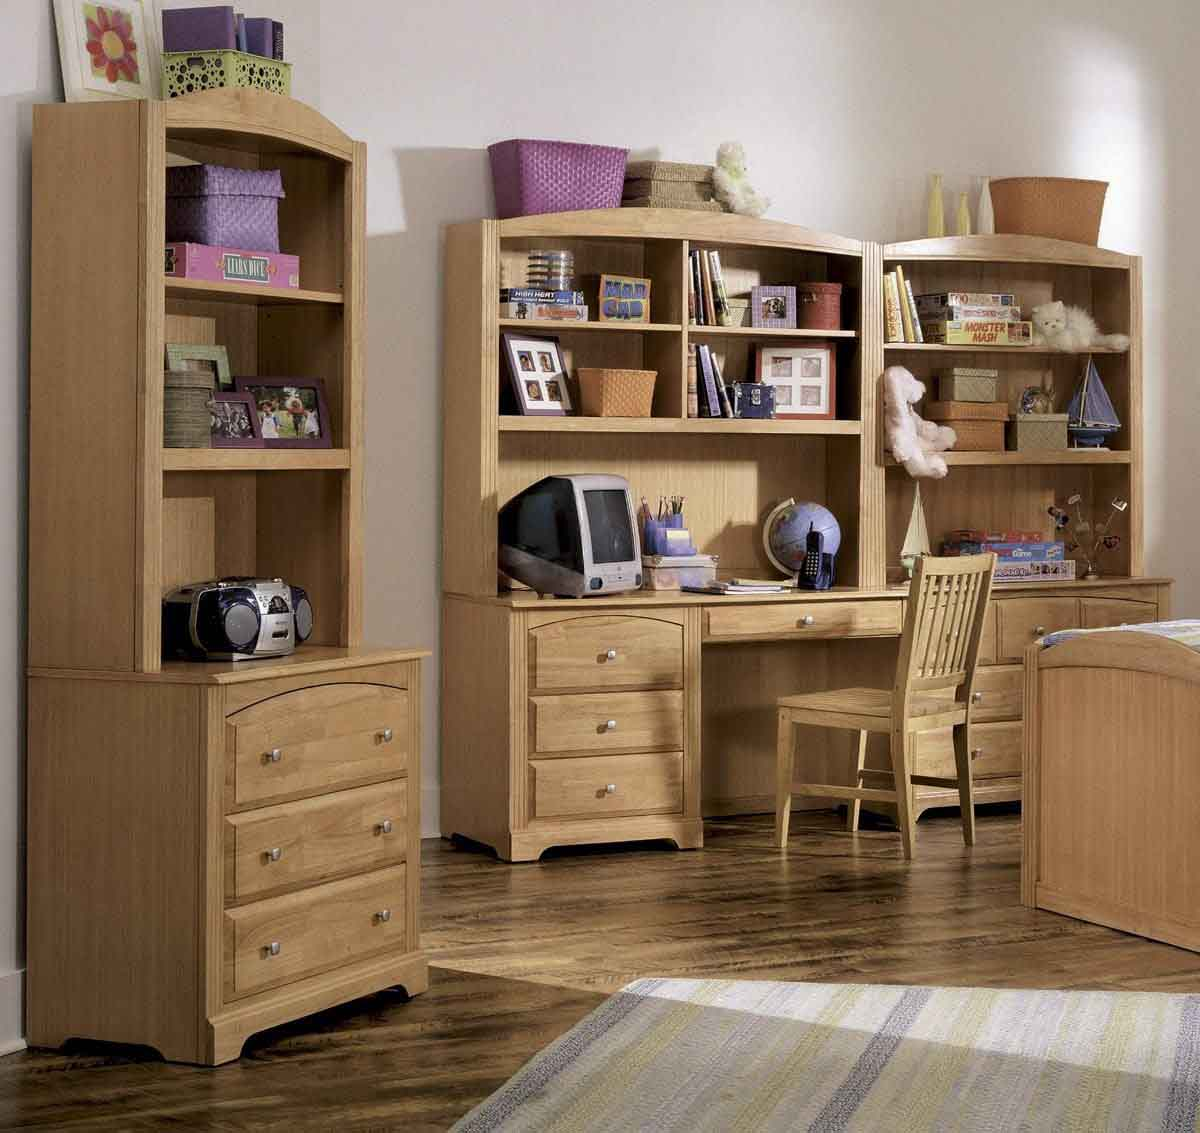 Storage Furniture For Small Spaces Contemporary Spaces Wooden ...